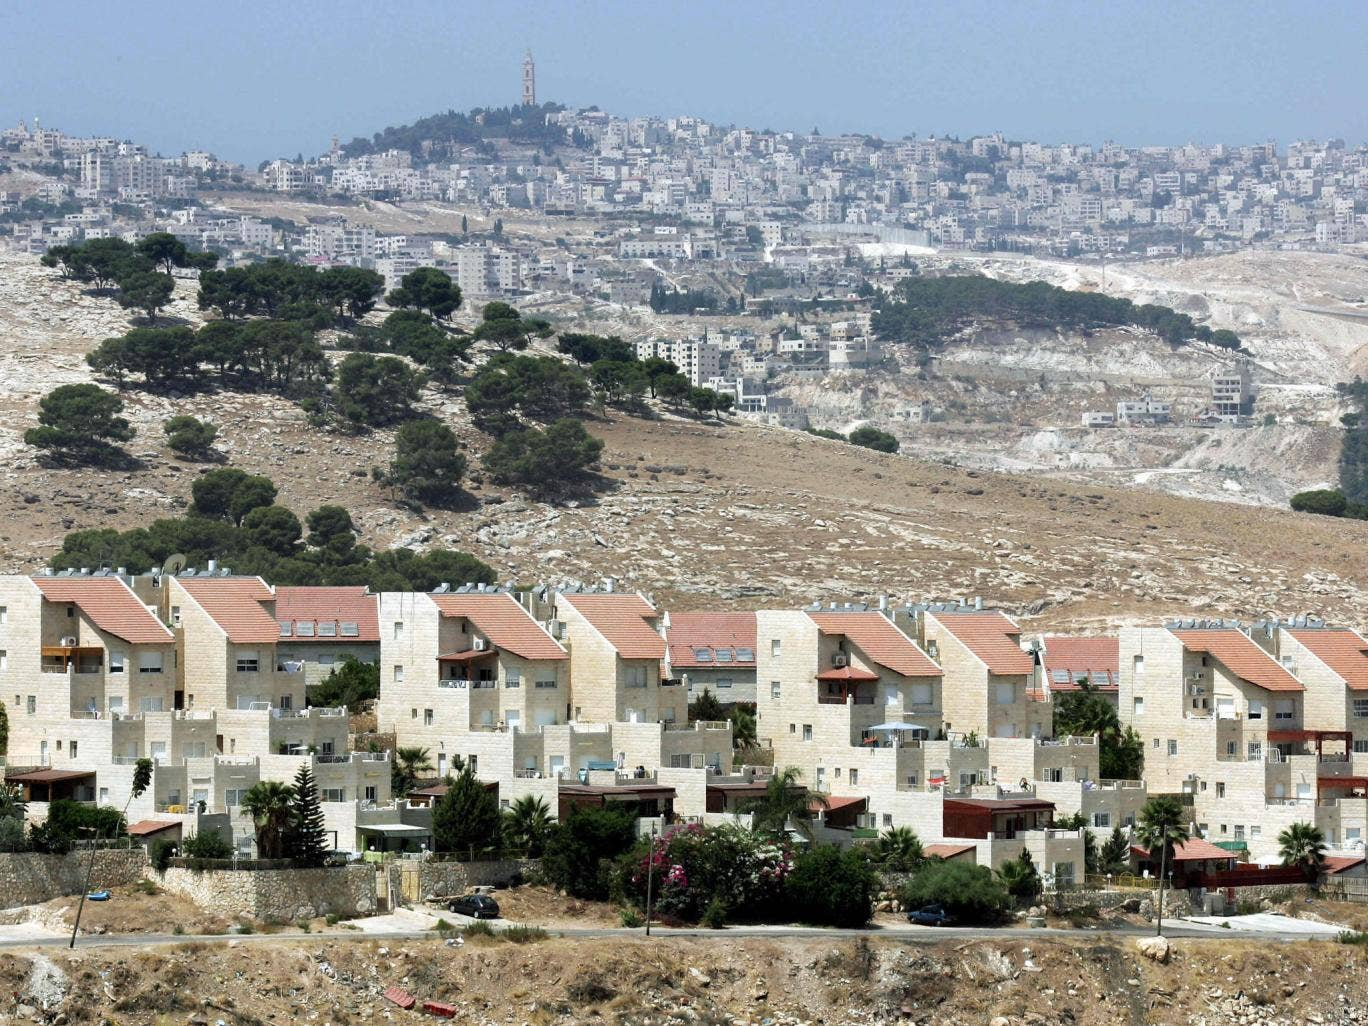 Houses (foreground) of the West Bank settlement of Maale Adumim